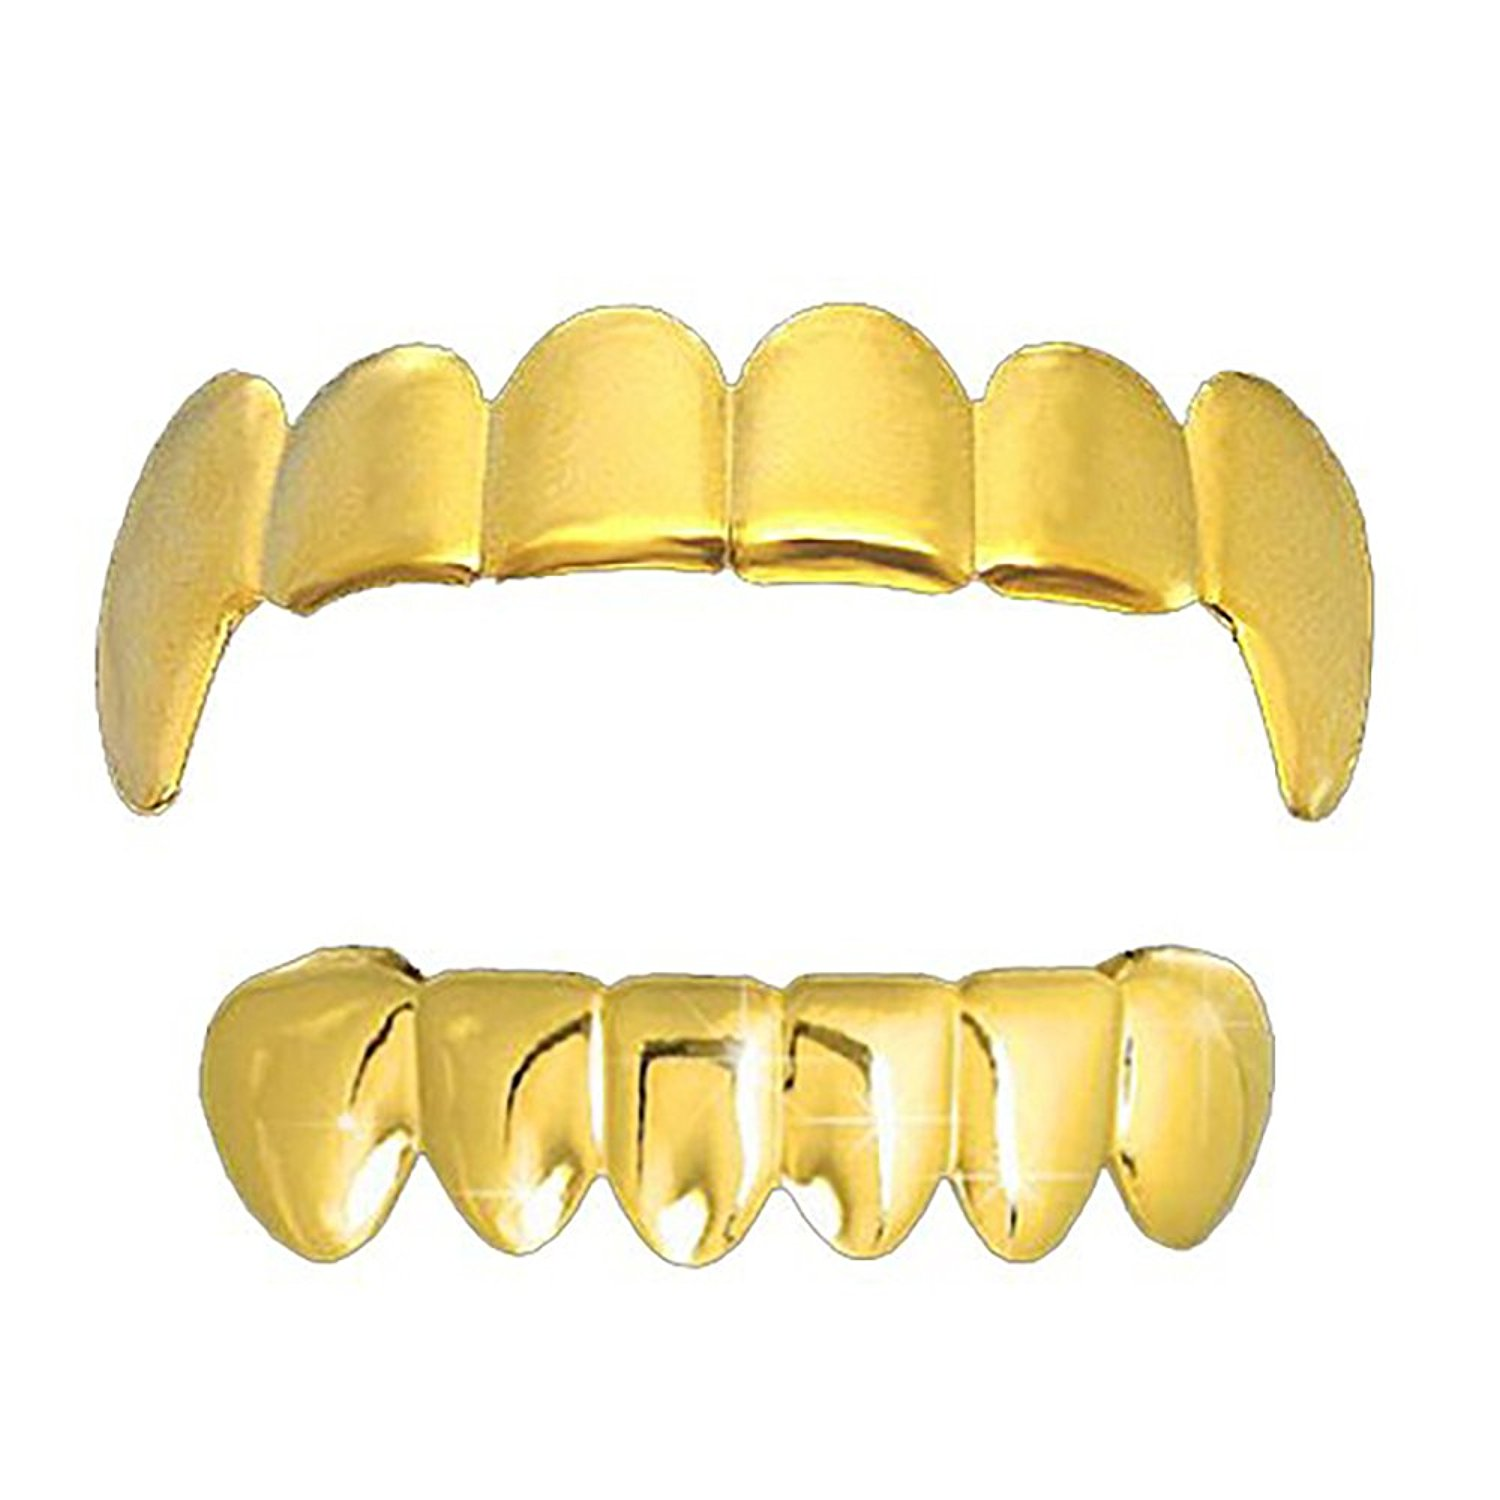 Gold Grill Clipart.